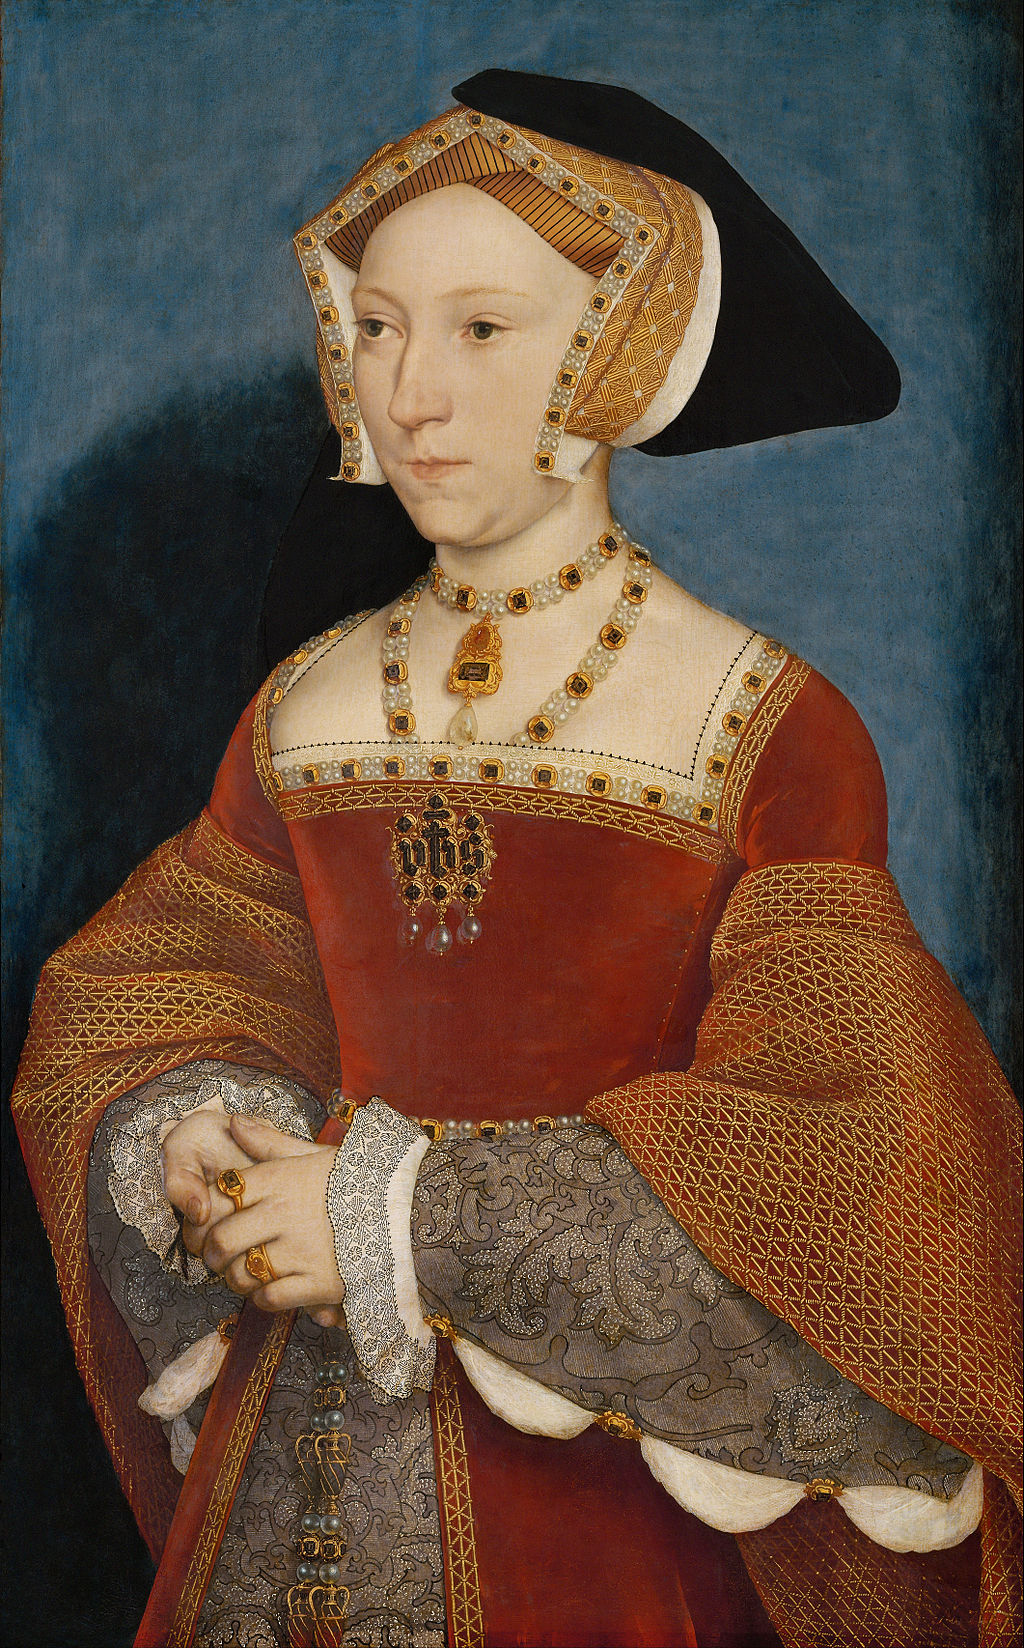 1024px-Hans_Holbein_the_Younger_-_Jane_Seymour,_Queen_of_England_-_Google_Art_Project